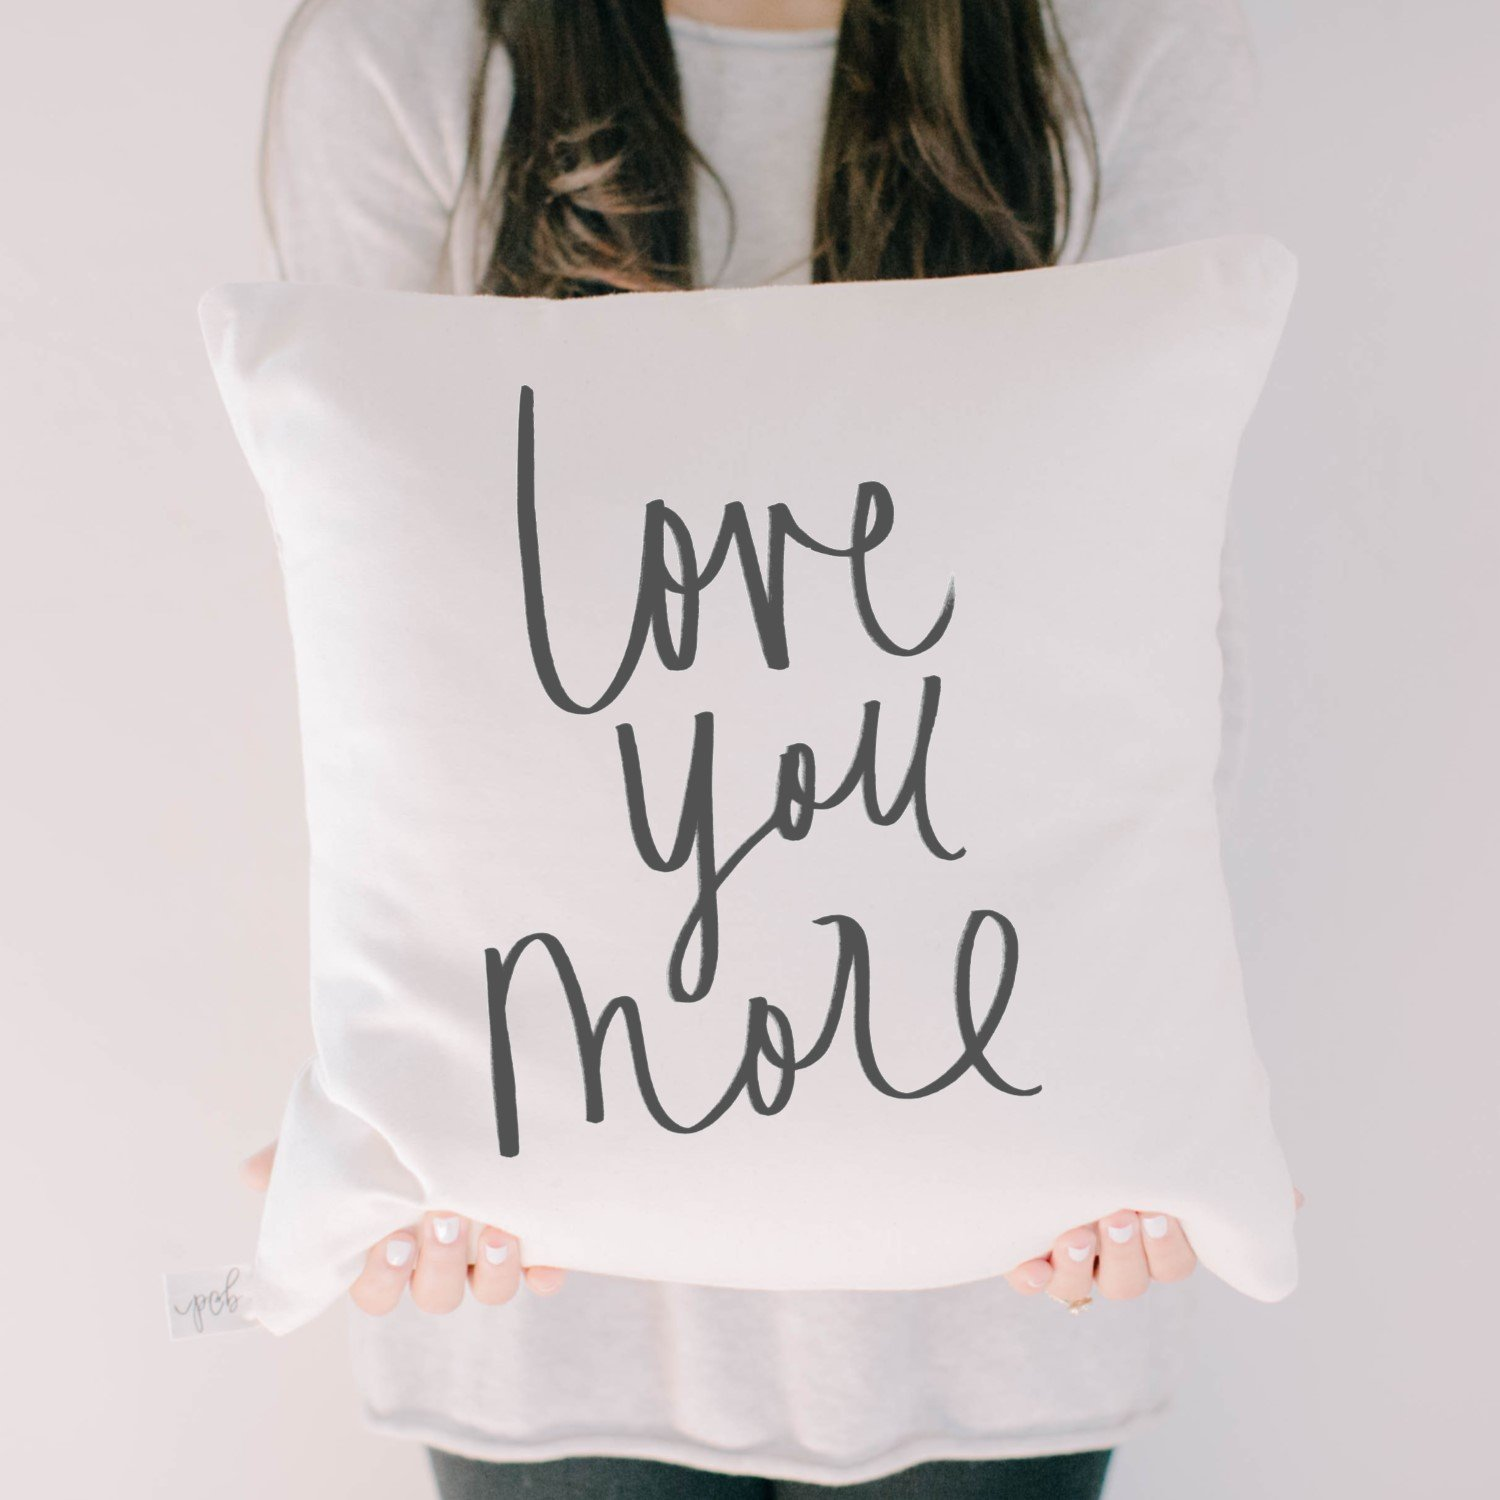 Throw Pillow - Love You More, Handmade in the USA, calligraphy, home decor, wedding gift, engagement present, housewarming gift, cushion cover, throw pillow